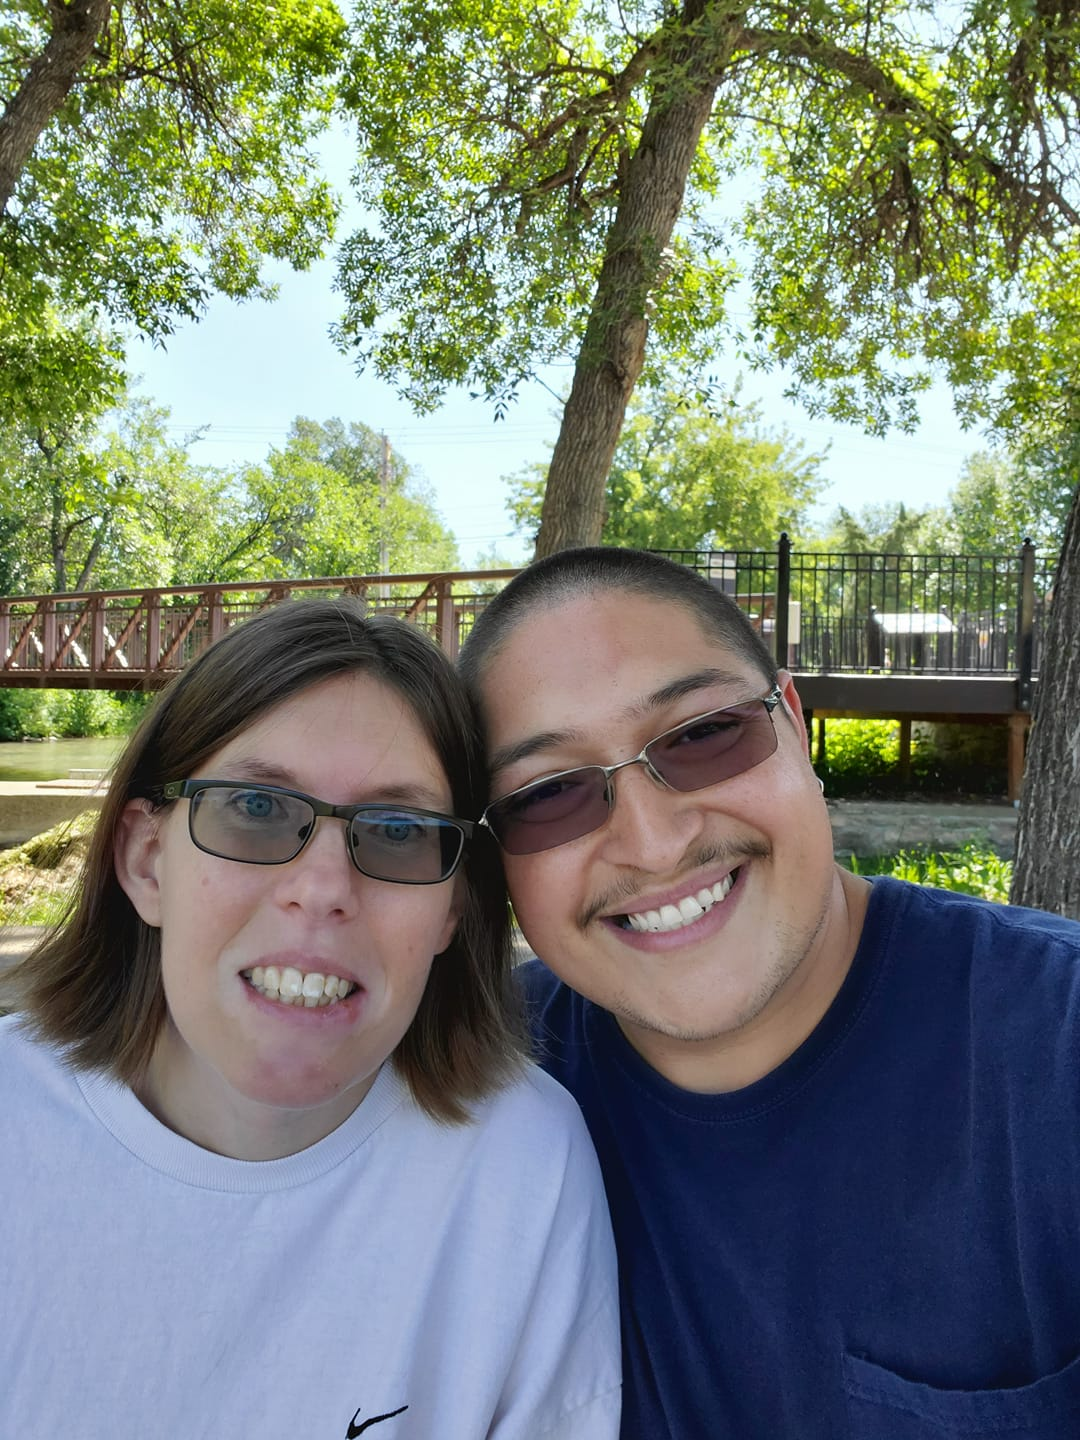 Nicole Carano met her husband at Walmart. They have been married for 10 years.